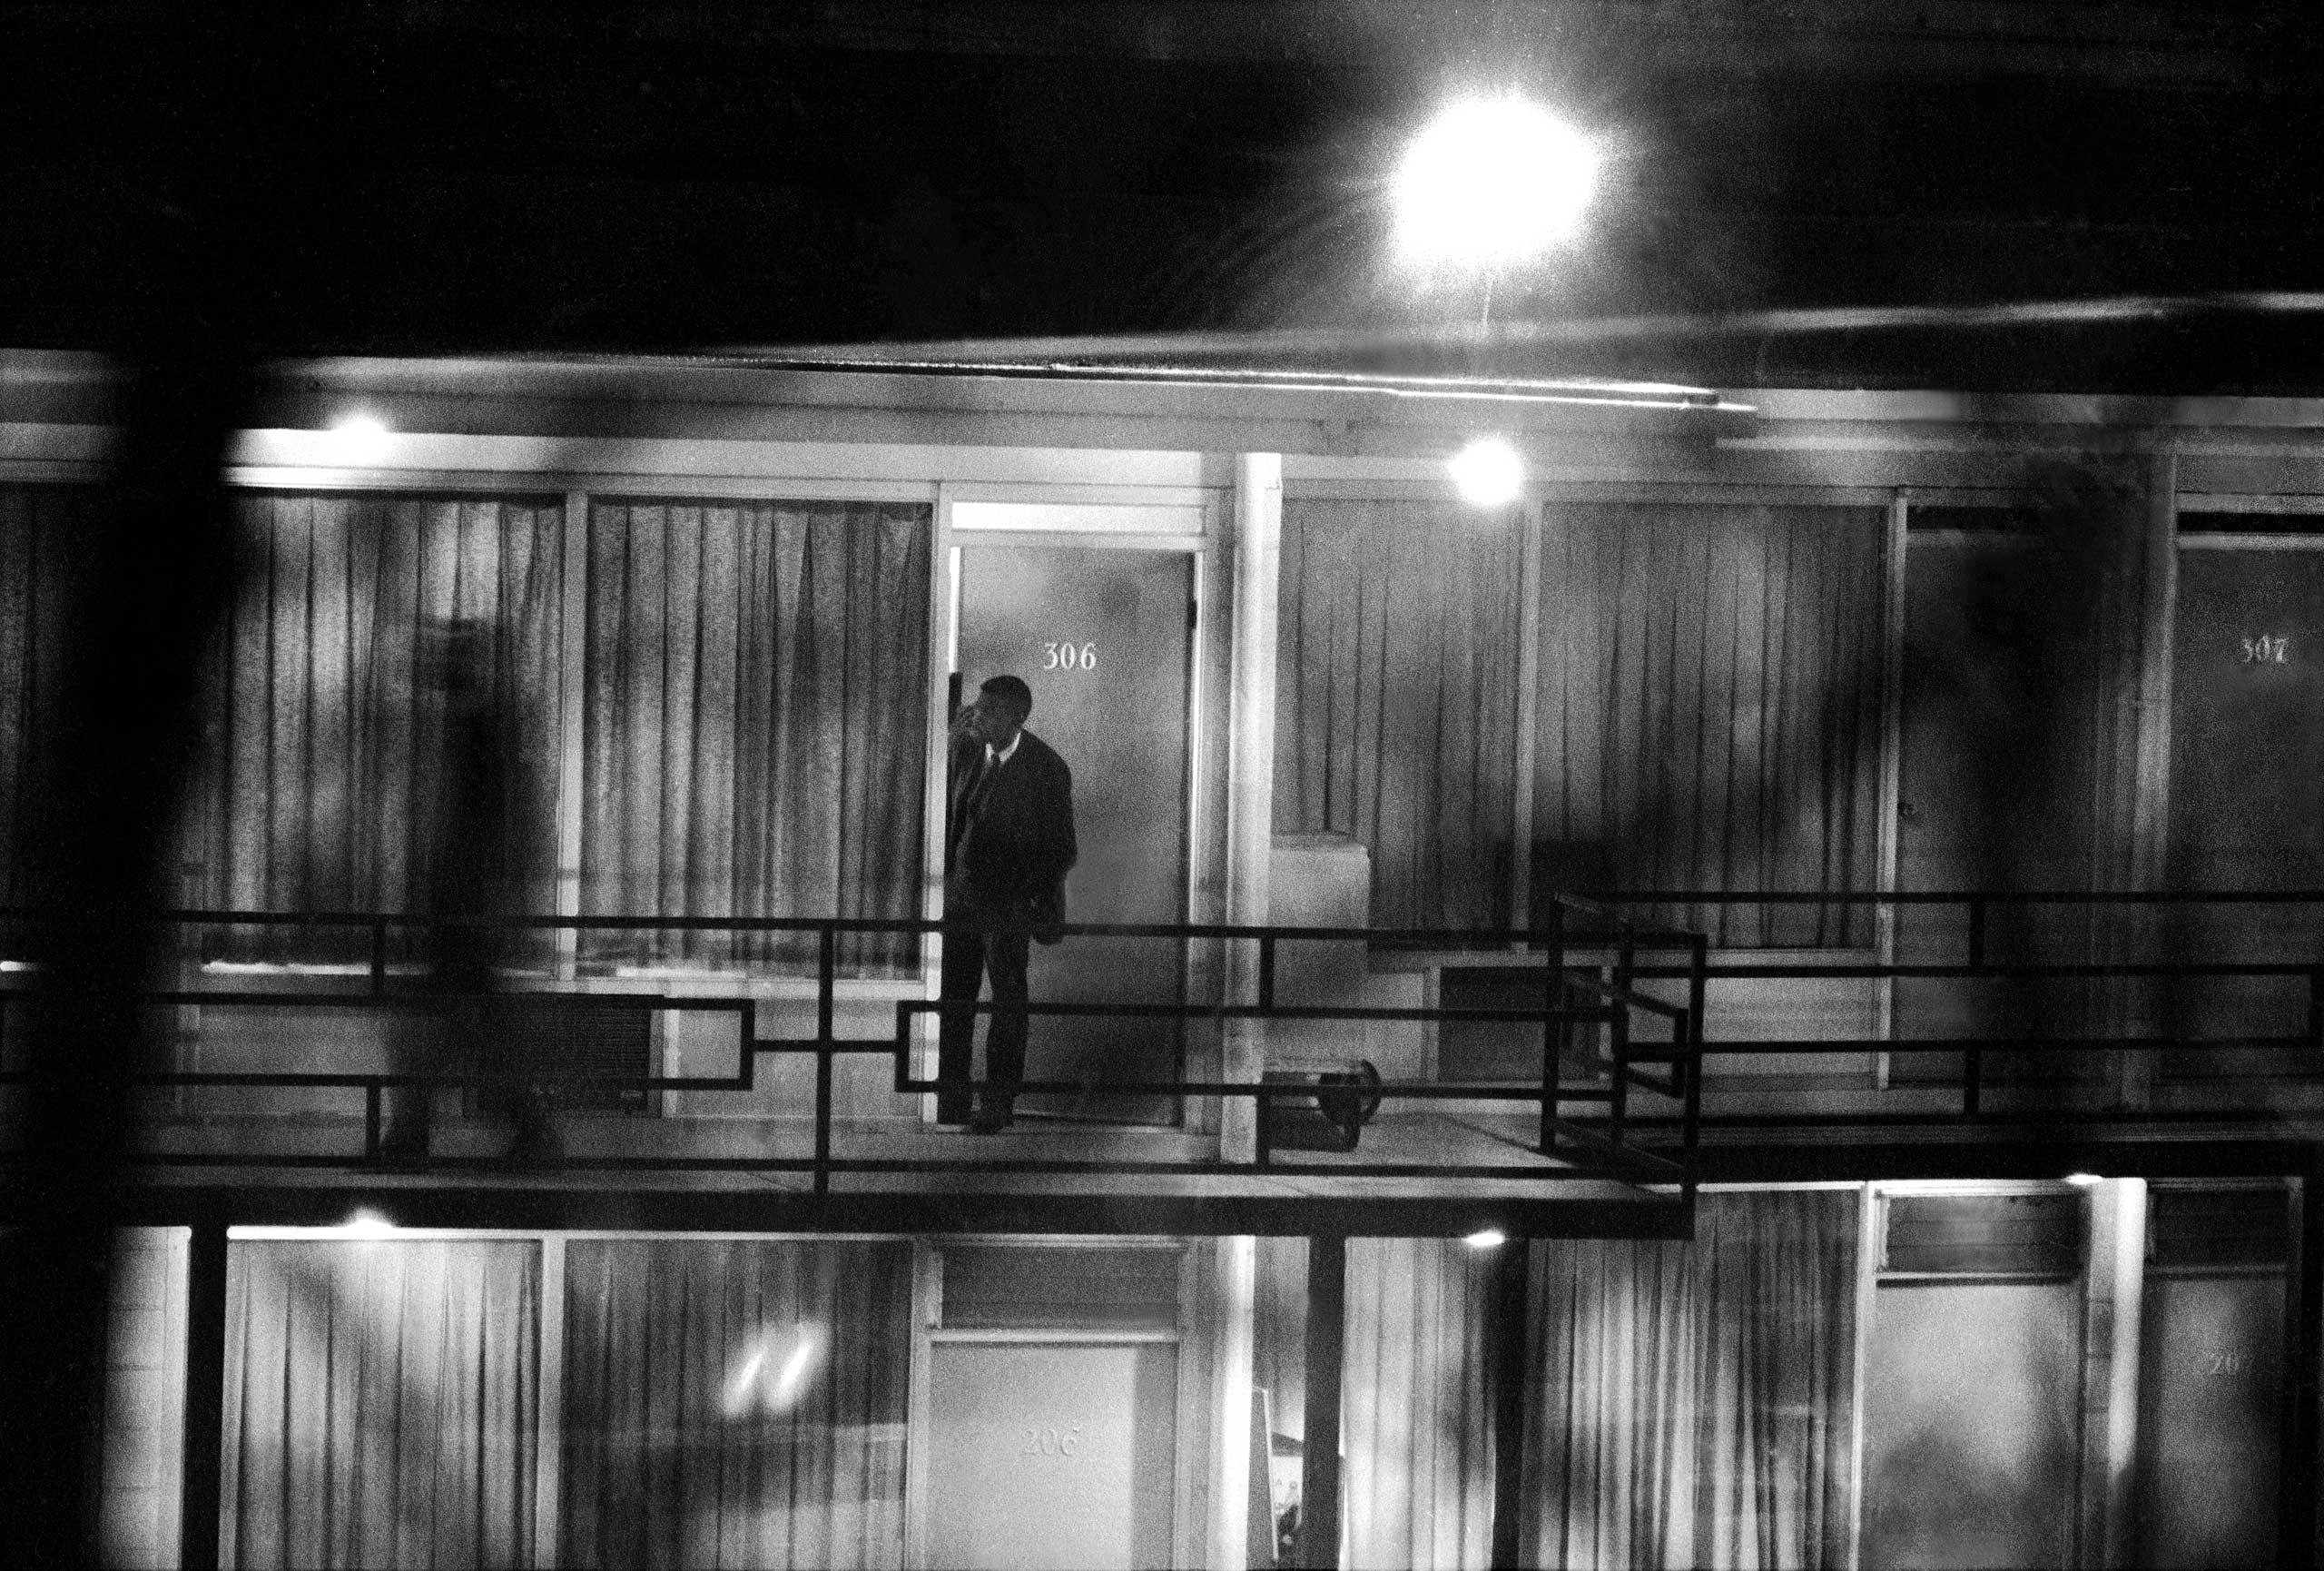 <b>Not published in LIFE.</b> A photo taken through tree branches by Henry Groskinsky from a derelict building across the street from the Lorraine Motel, April 4, 1968, very close to where the shot that killed Dr. King likely came from.